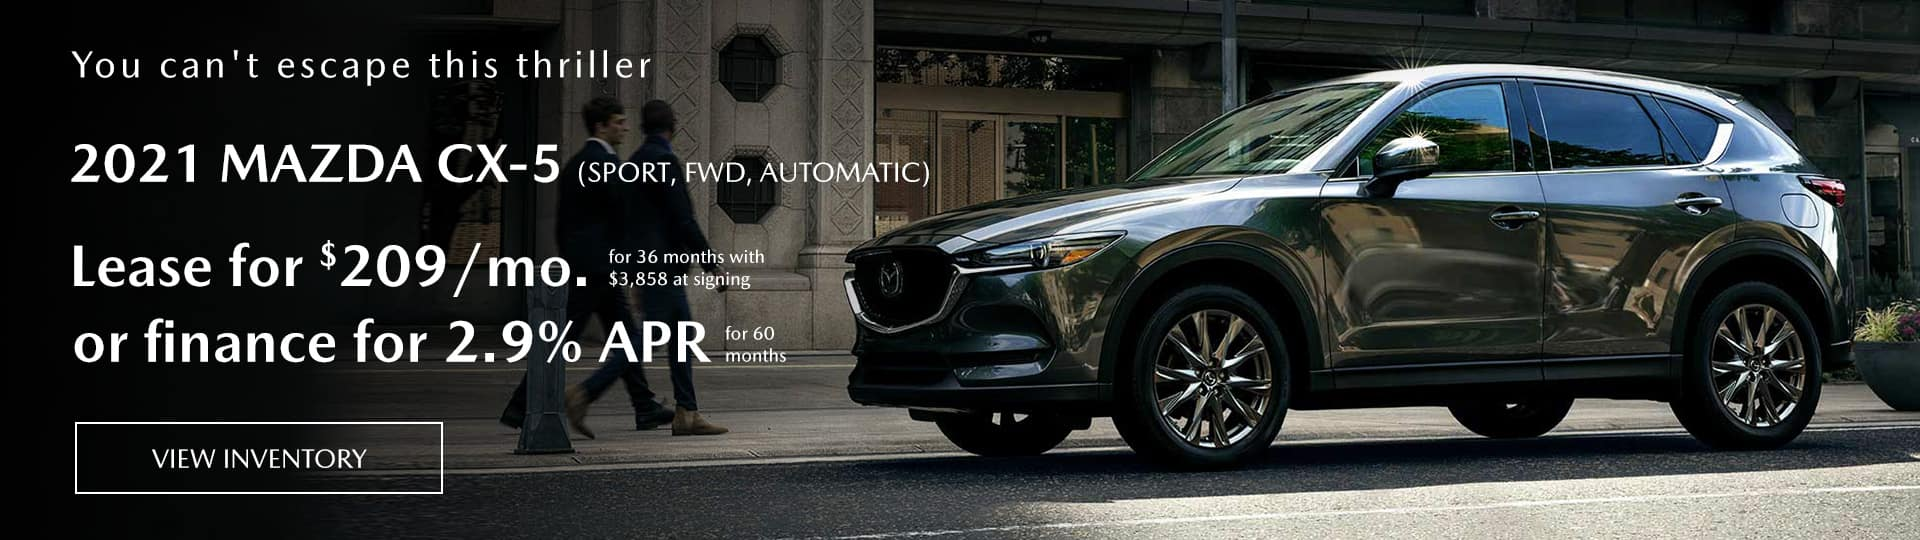 2021 mazda cx-5 (sport, FWD,automatic) lease for $209/mo. for 36 months with $3,858 at signing or finance for 2.9% apr for 60 months